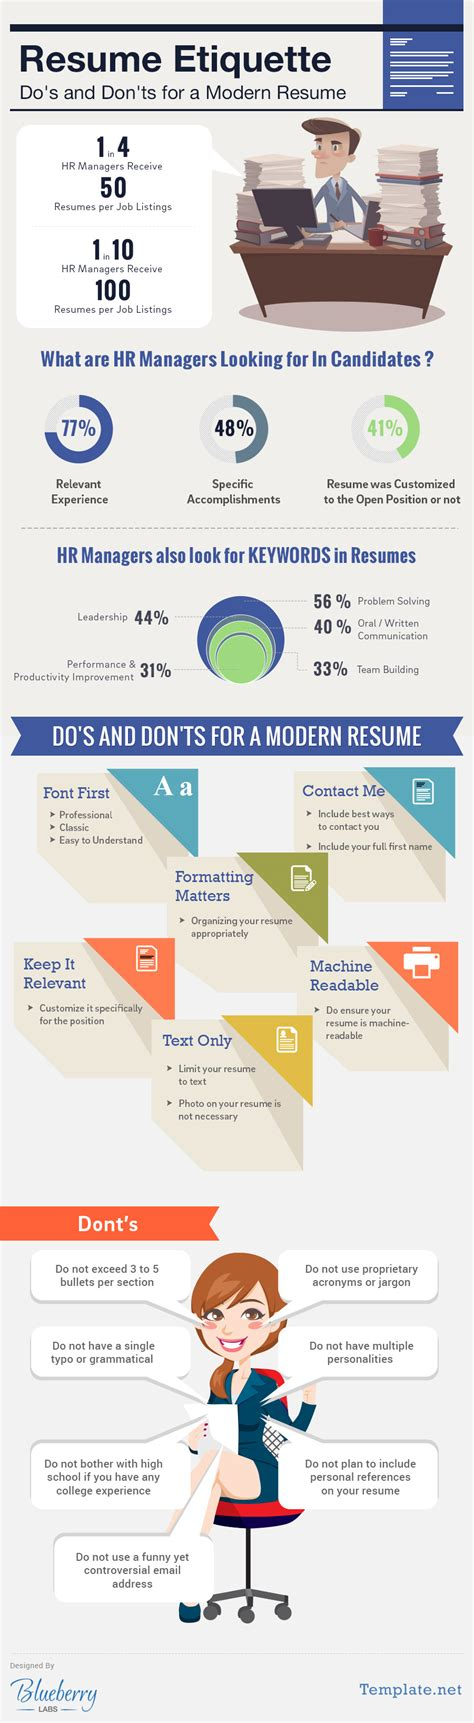 resume etiquette do s and don ts for a modern resume infographic careertopia